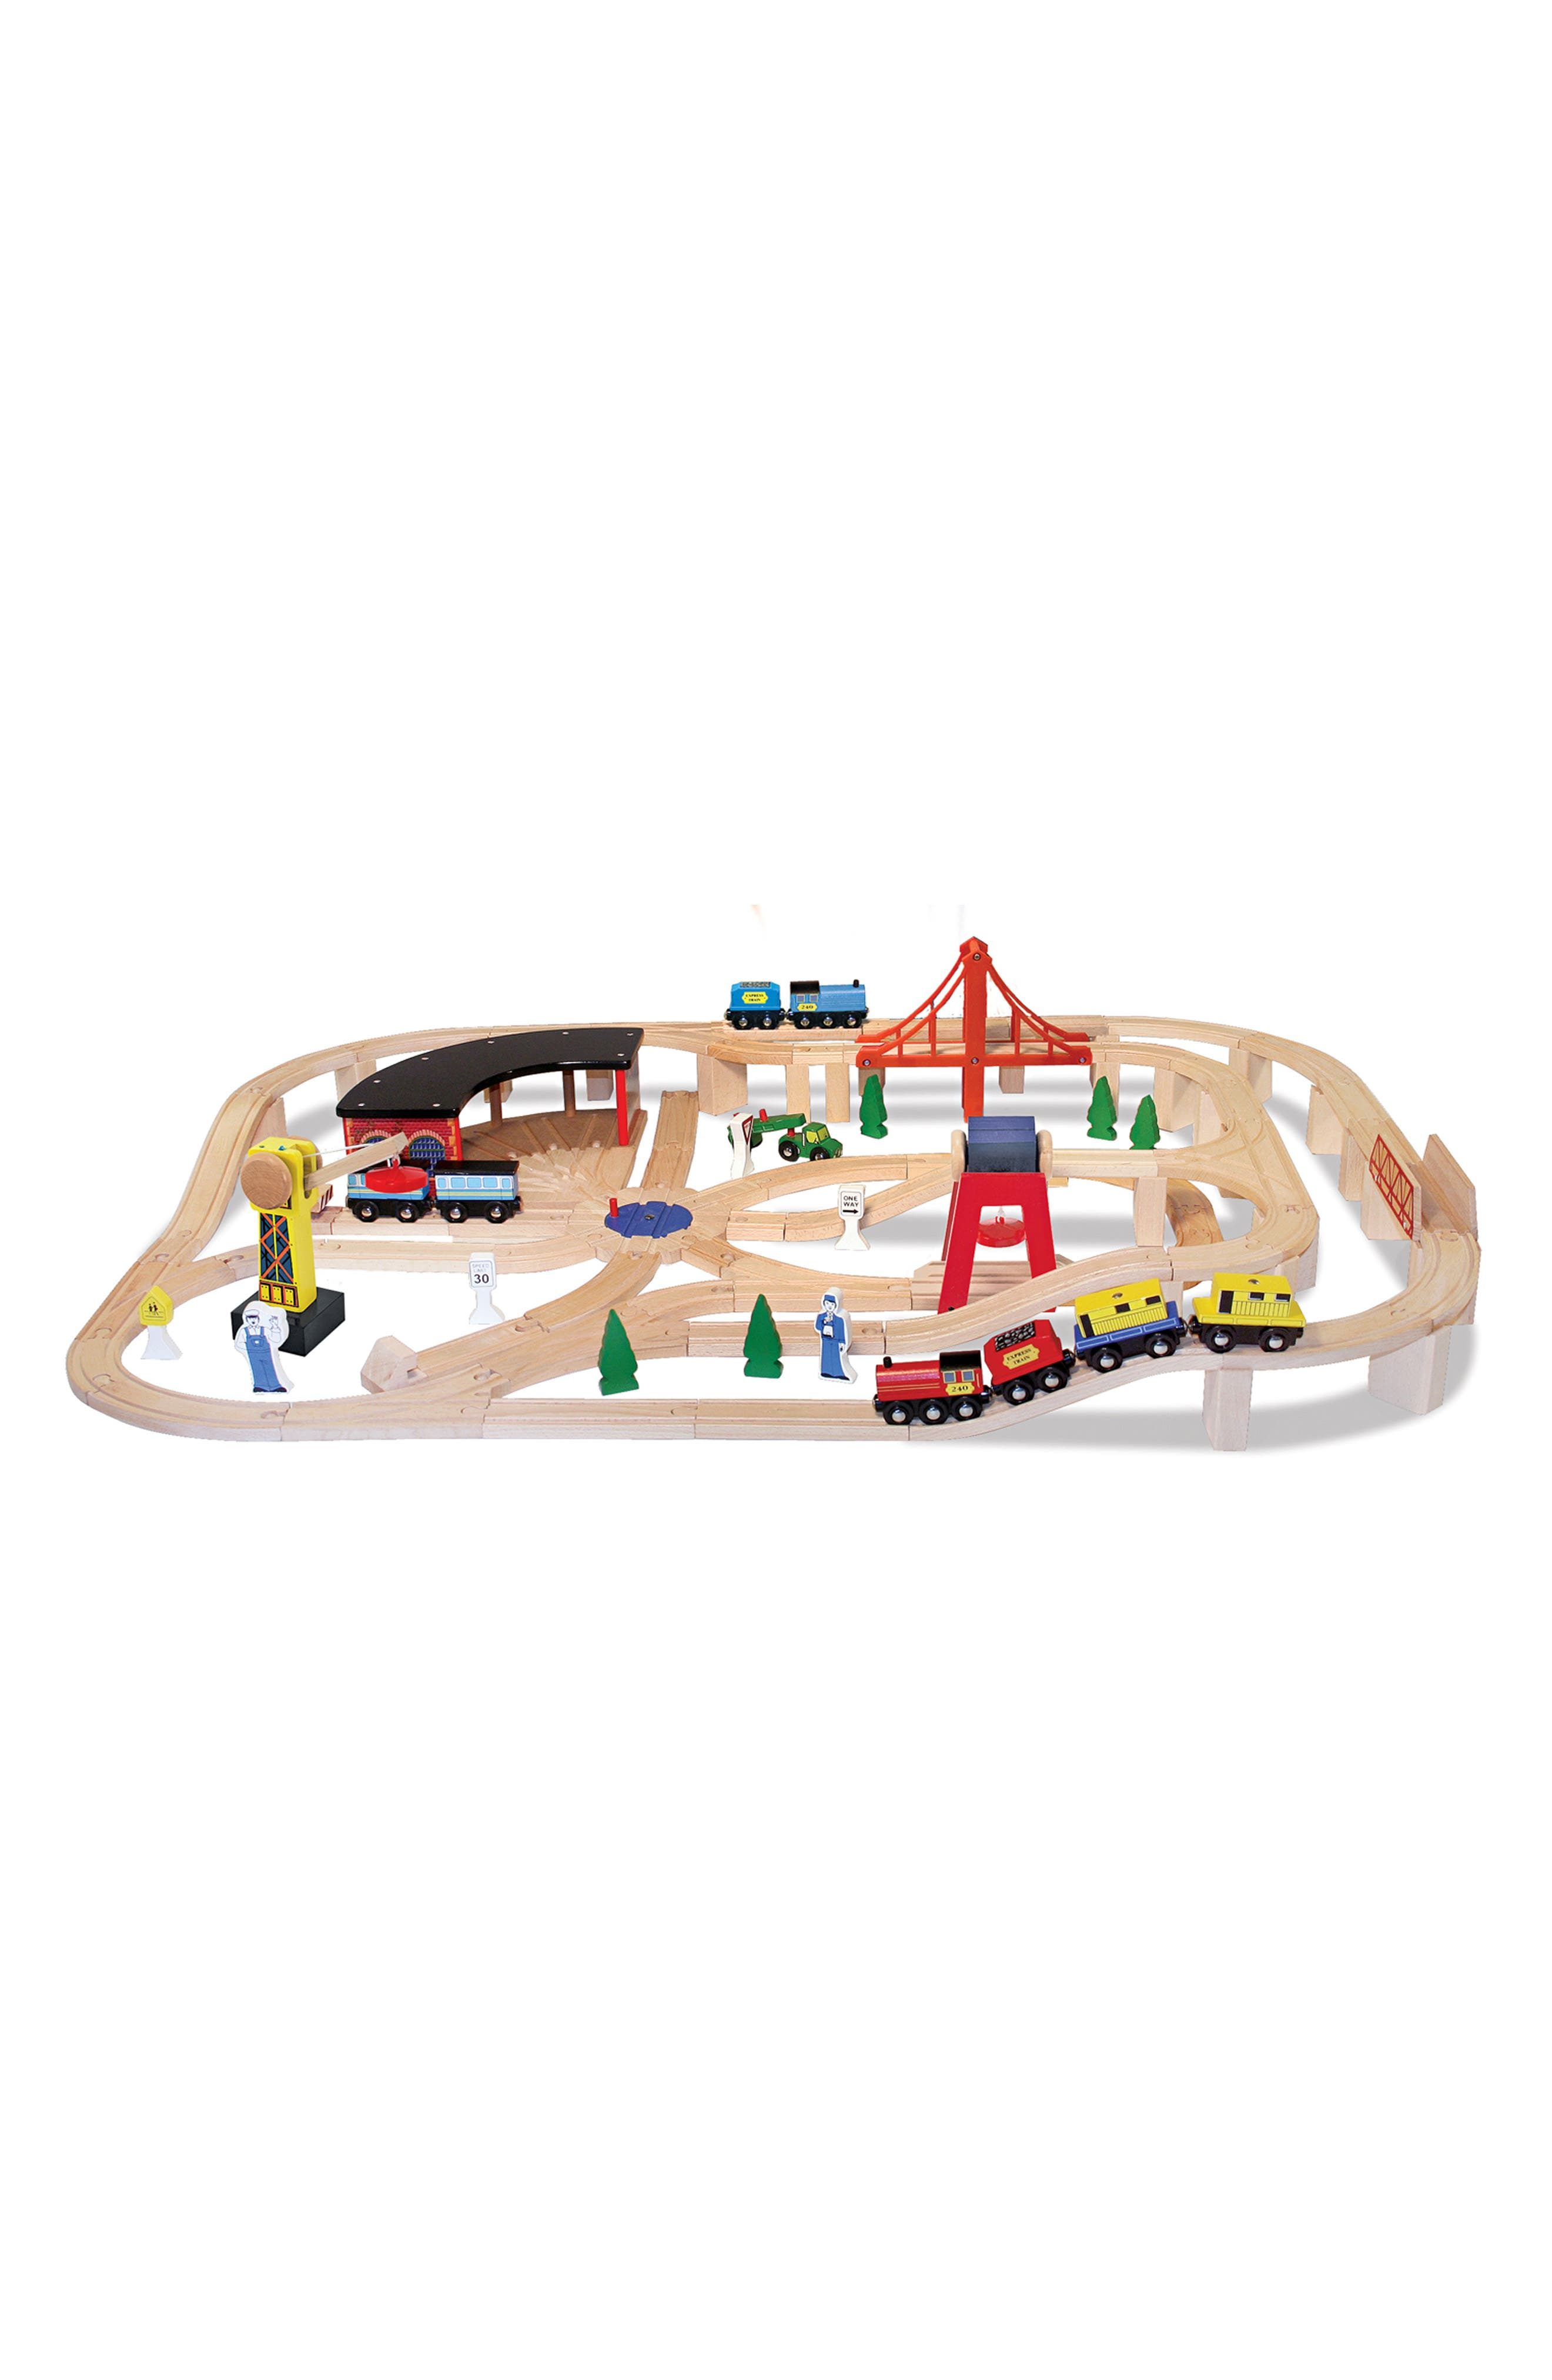 Toddler Boys Melissa  Doug Wooden Railway  Wooden Train Cars Set